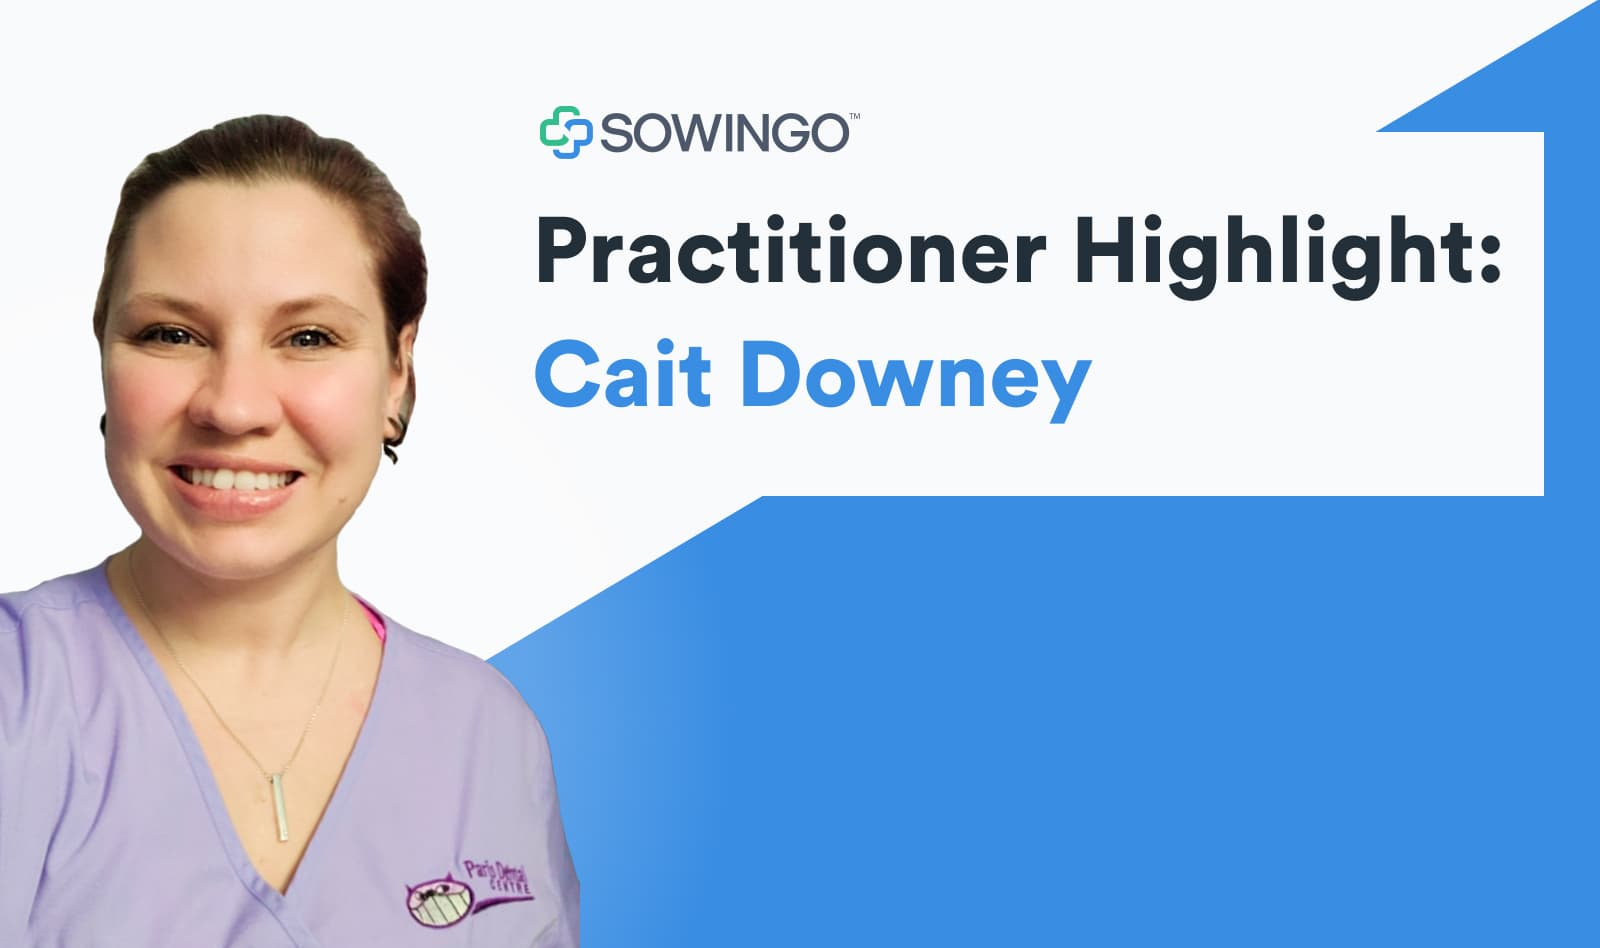 Practitioner highlight Cait Downer interview with profile image